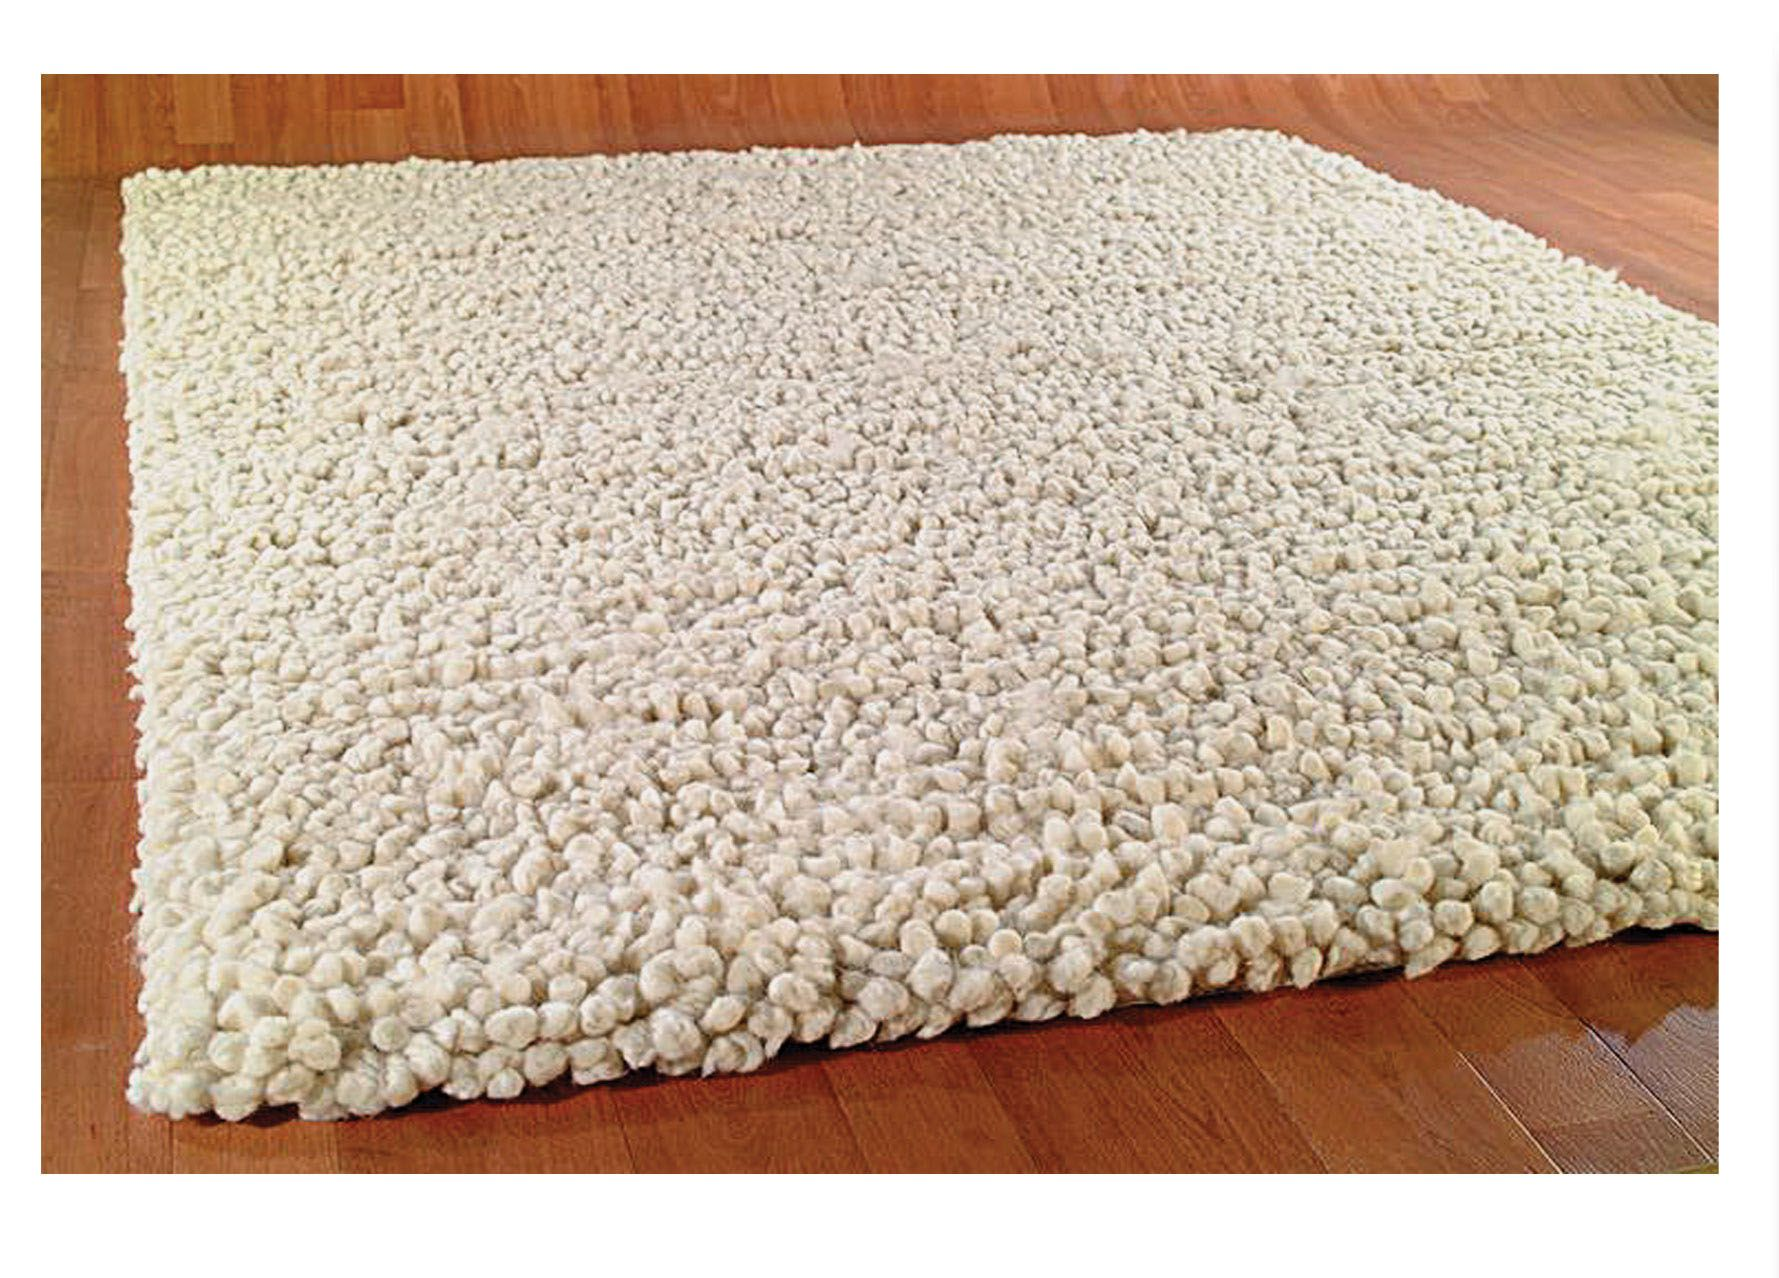 Rug What Makes A Good Rug Wwwdecoresourcecom Floors - Different types of rugs and carpets